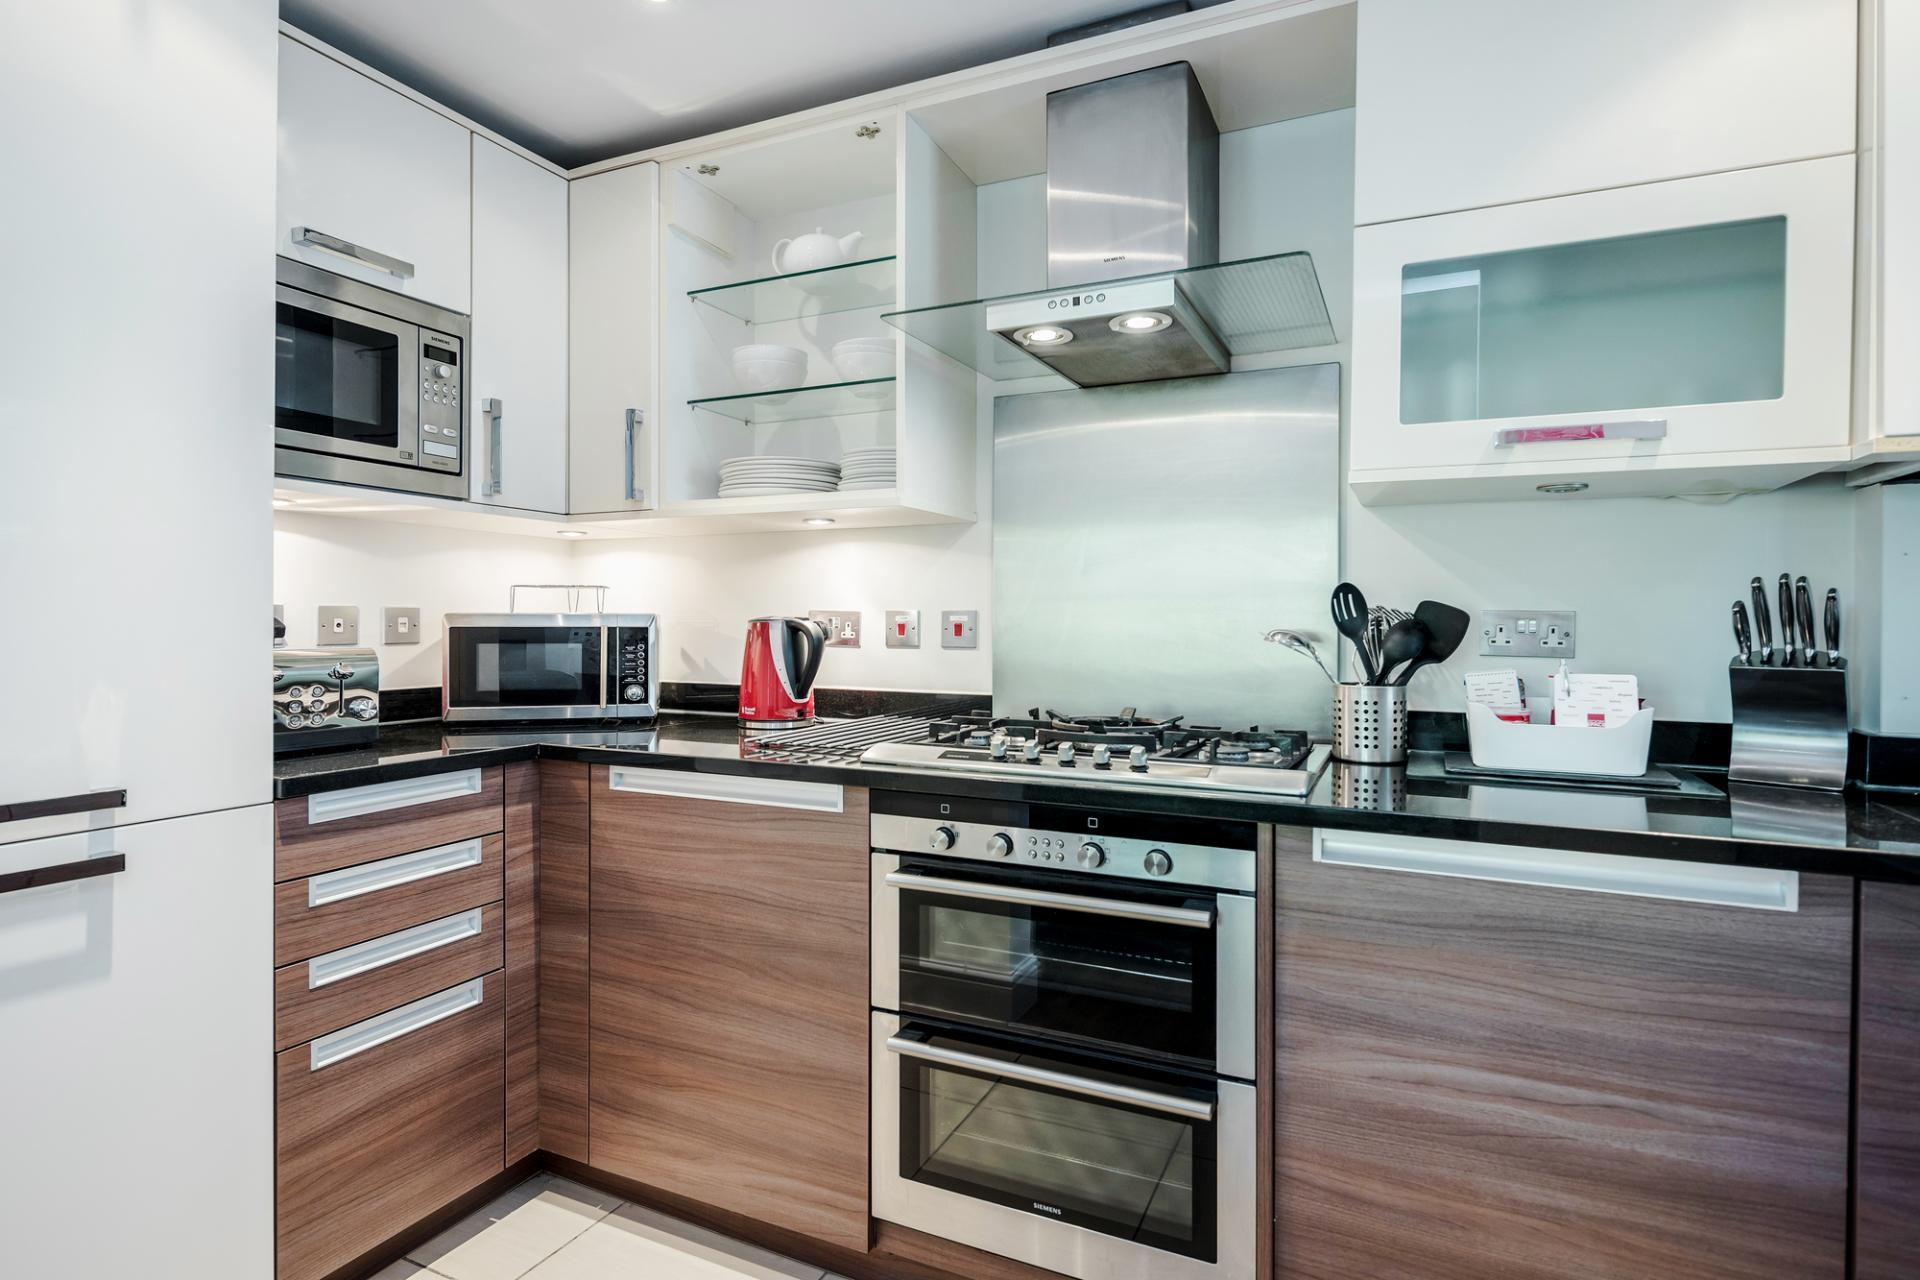 Kitchen at Little Orchard Place Apartments, Centre, Esher - Citybase Apartments